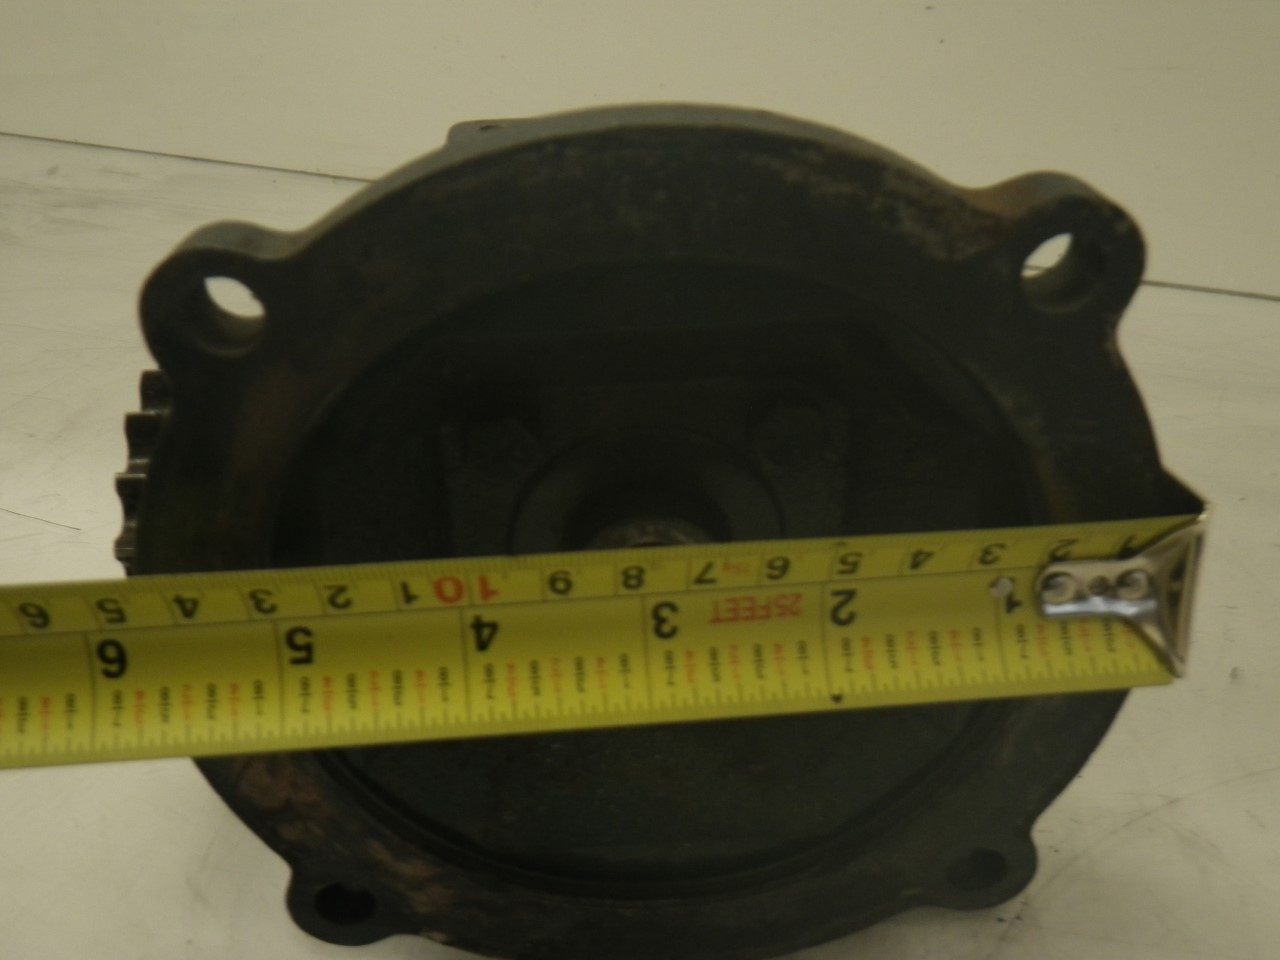 IMGP6972M01133-2 Flexaline GearBox 0.260 inhp, ratio140 motor frame56c (Used Tested) (12)